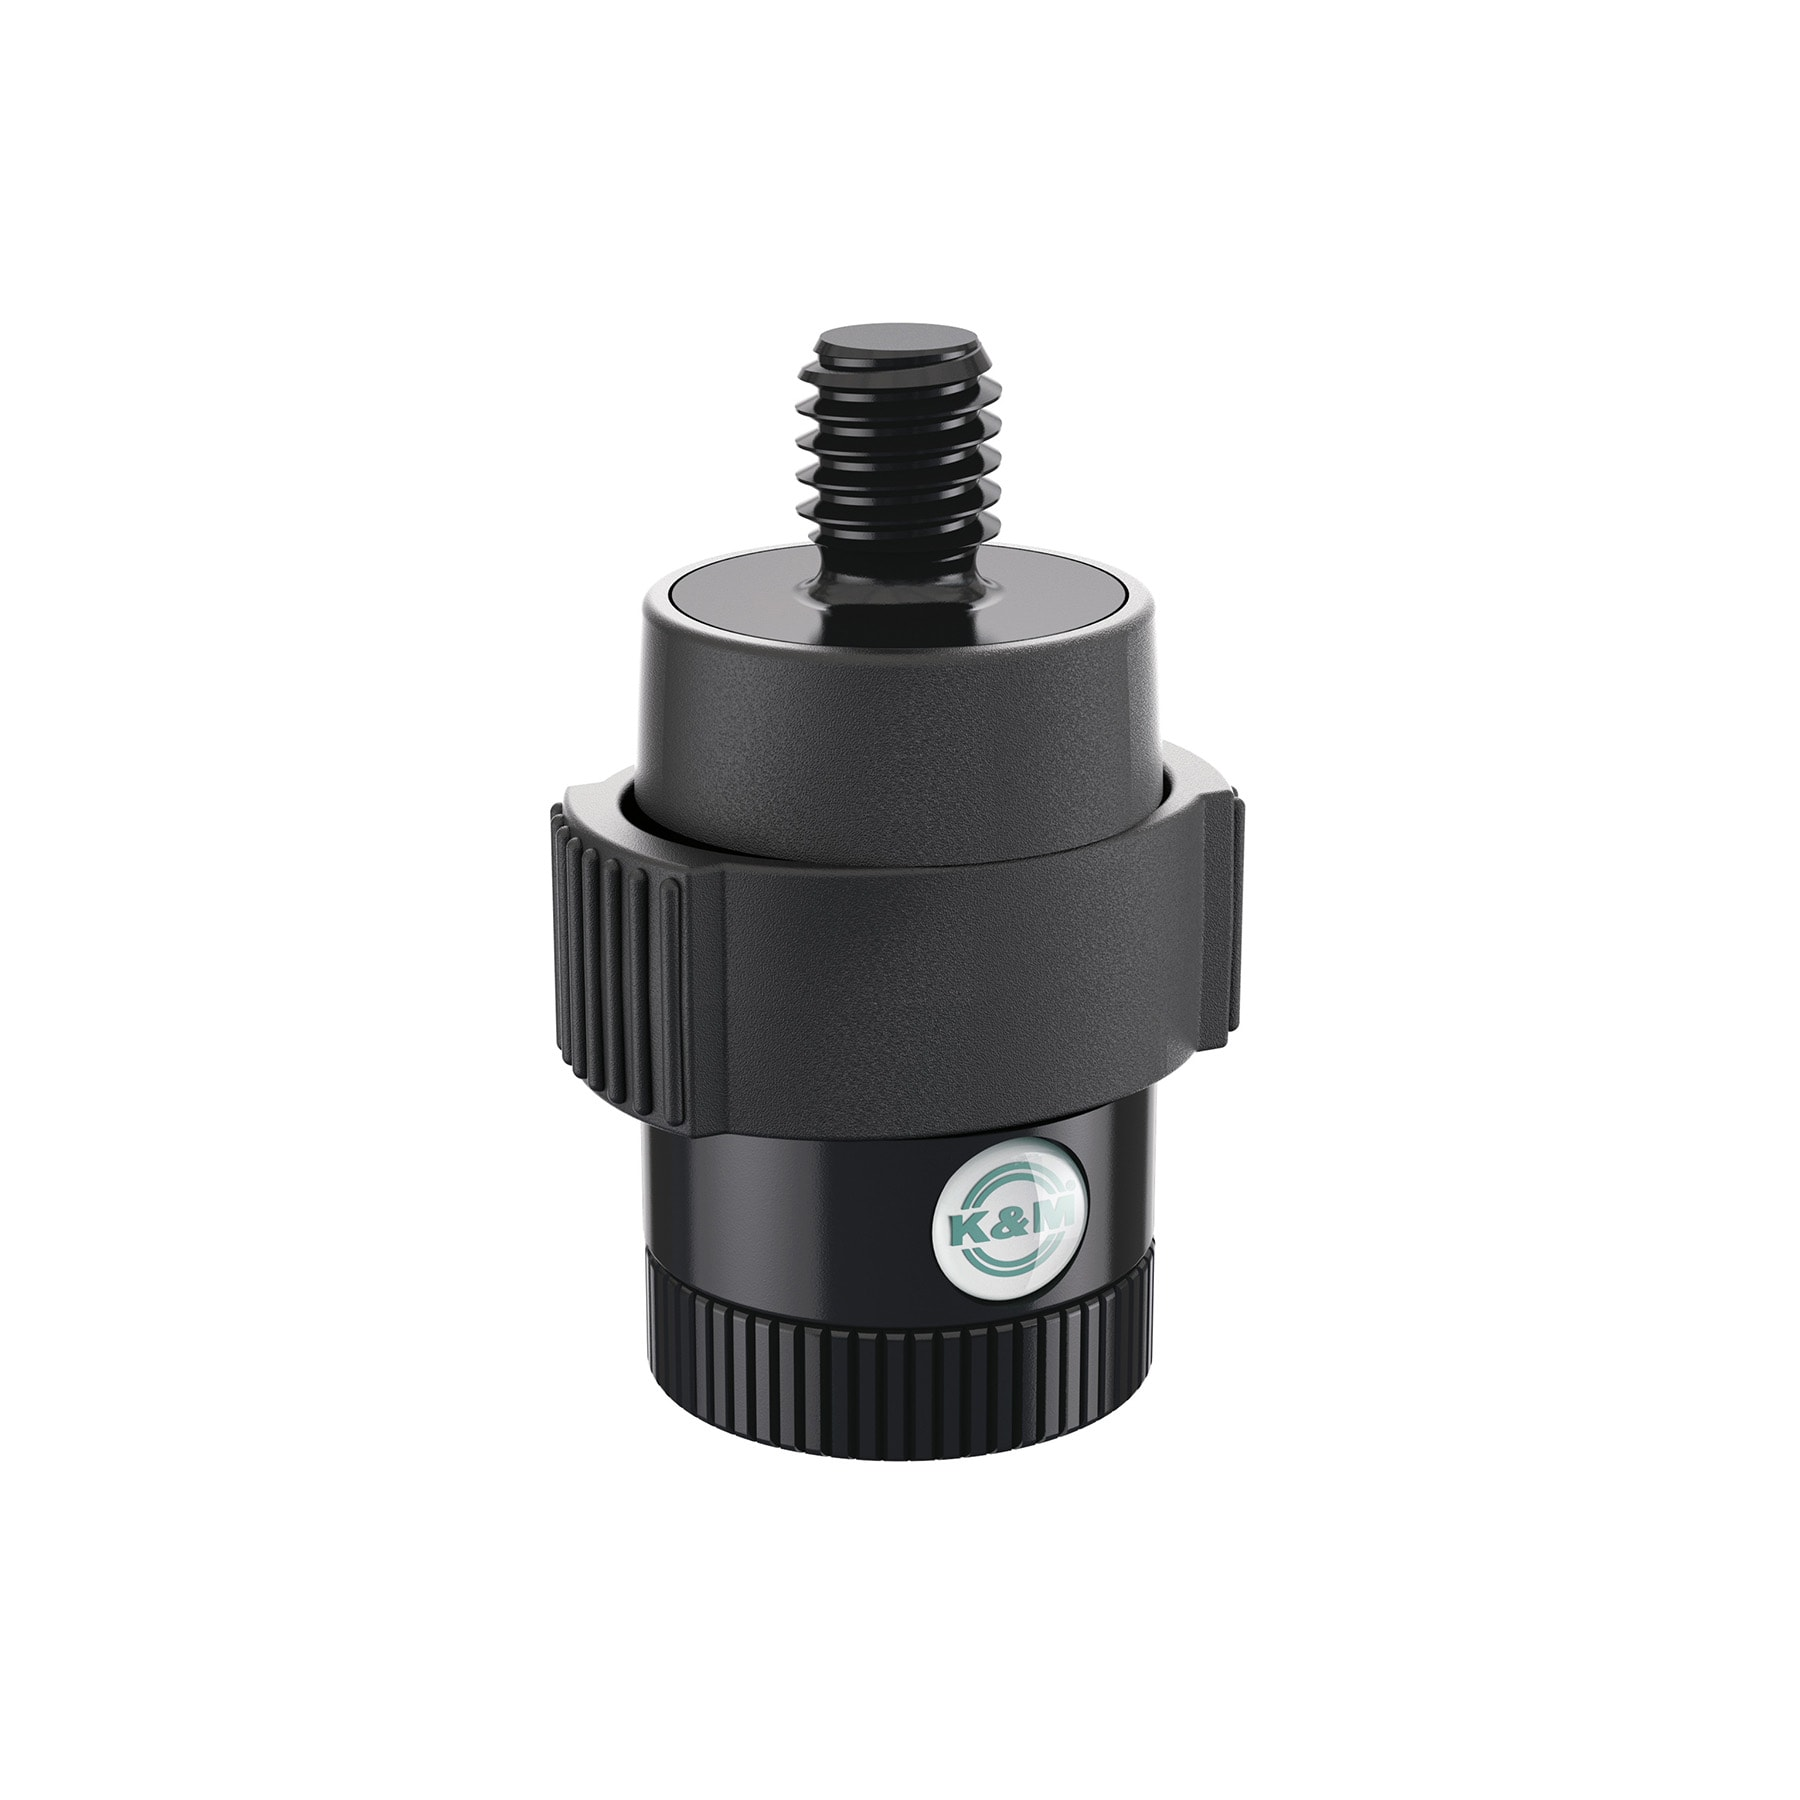 KM23910 - Quick release adaptor for microphones